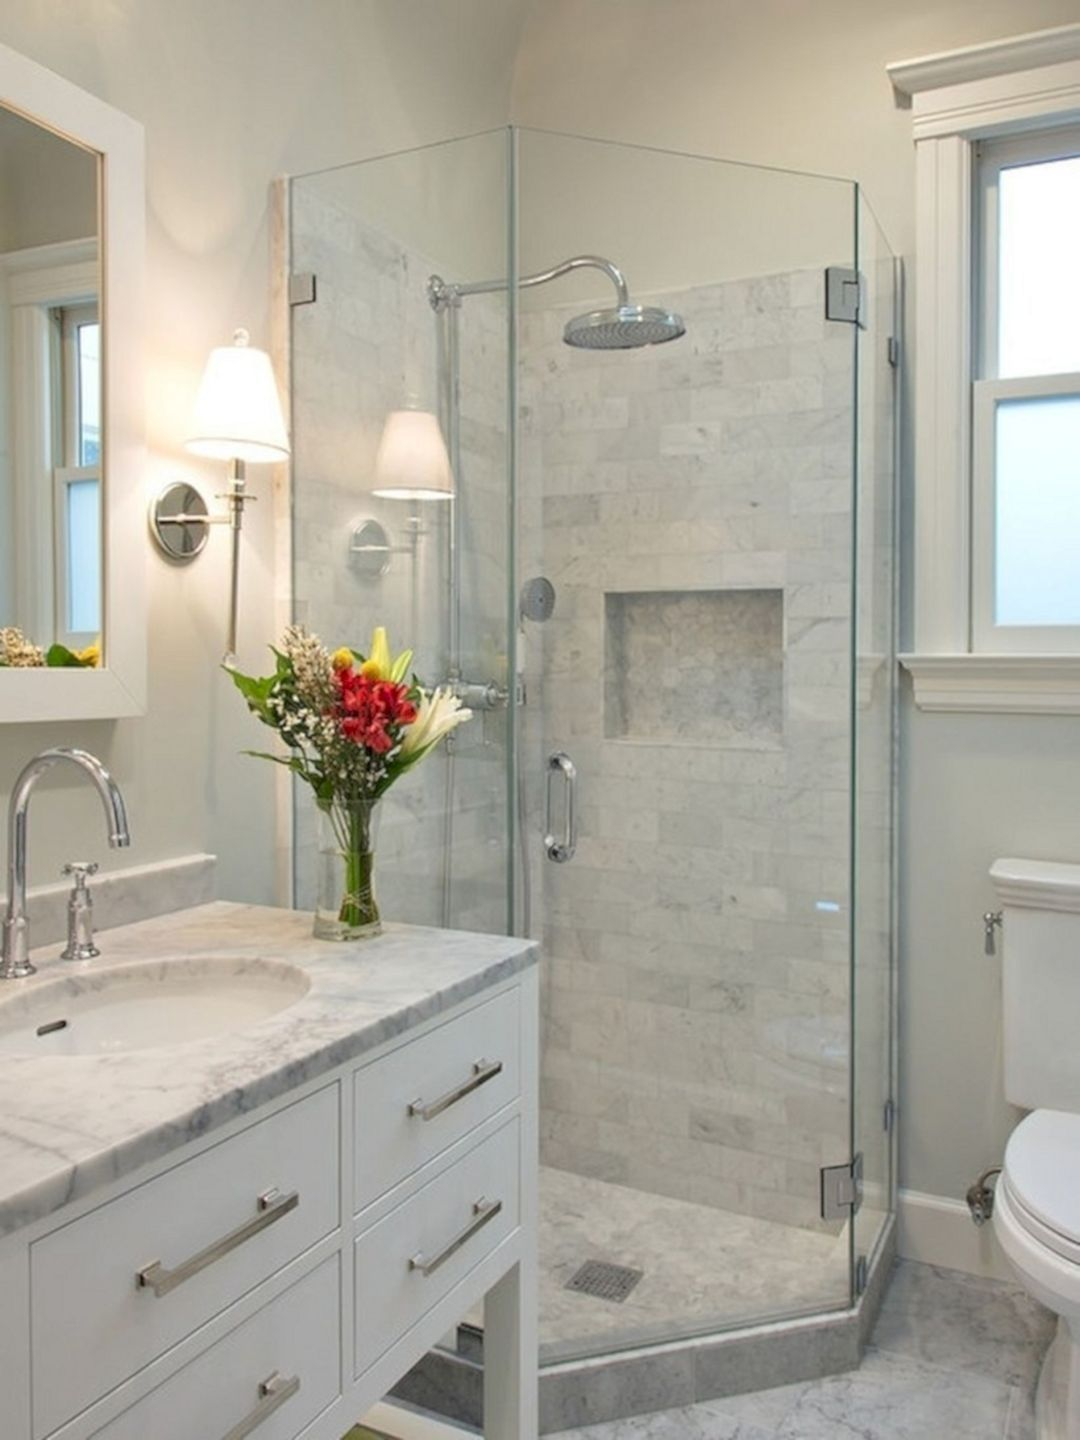 15 gorgeous small bathroom remodel ideas on a budget